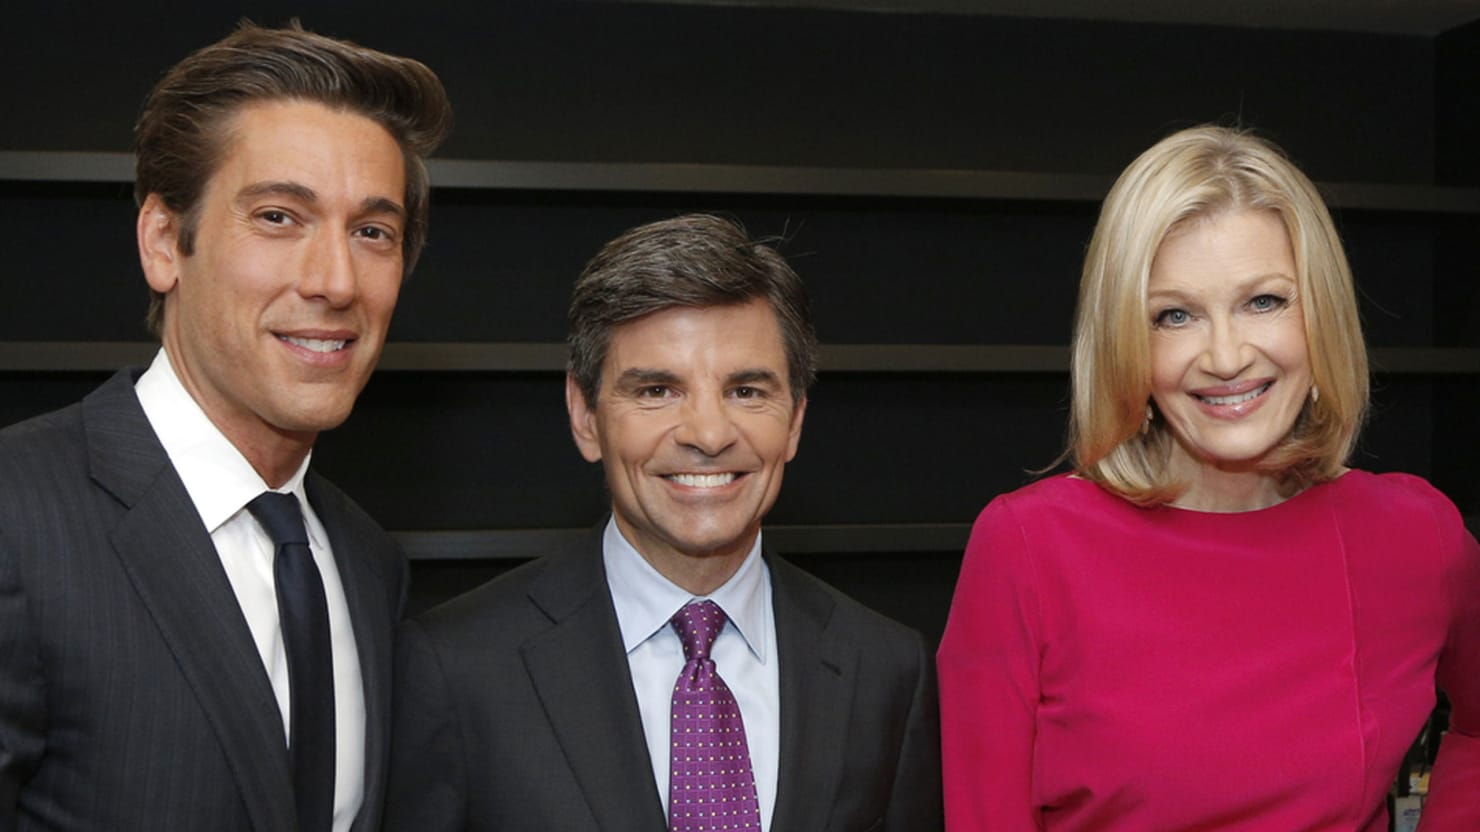 But The Position Of Chief Anchor Has Been Secured By George Stephanopoulos Is Everyone Really As Happy